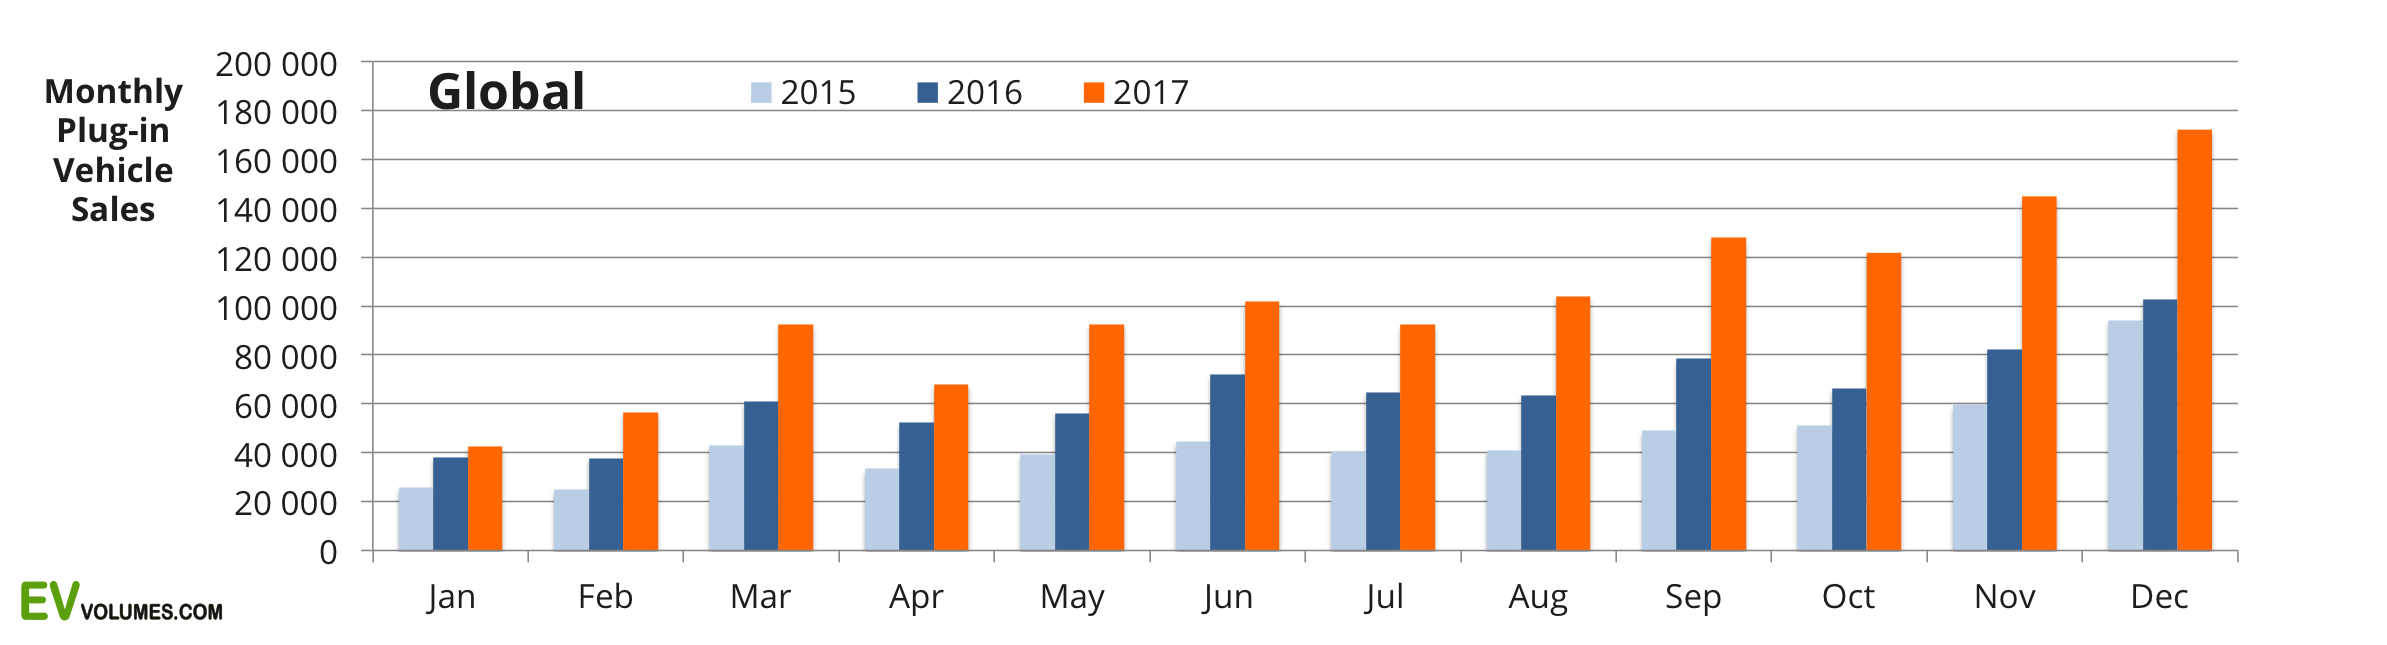 first Global Plug-in Sales for 2017-Q4 and the Full Year (prelim.) image